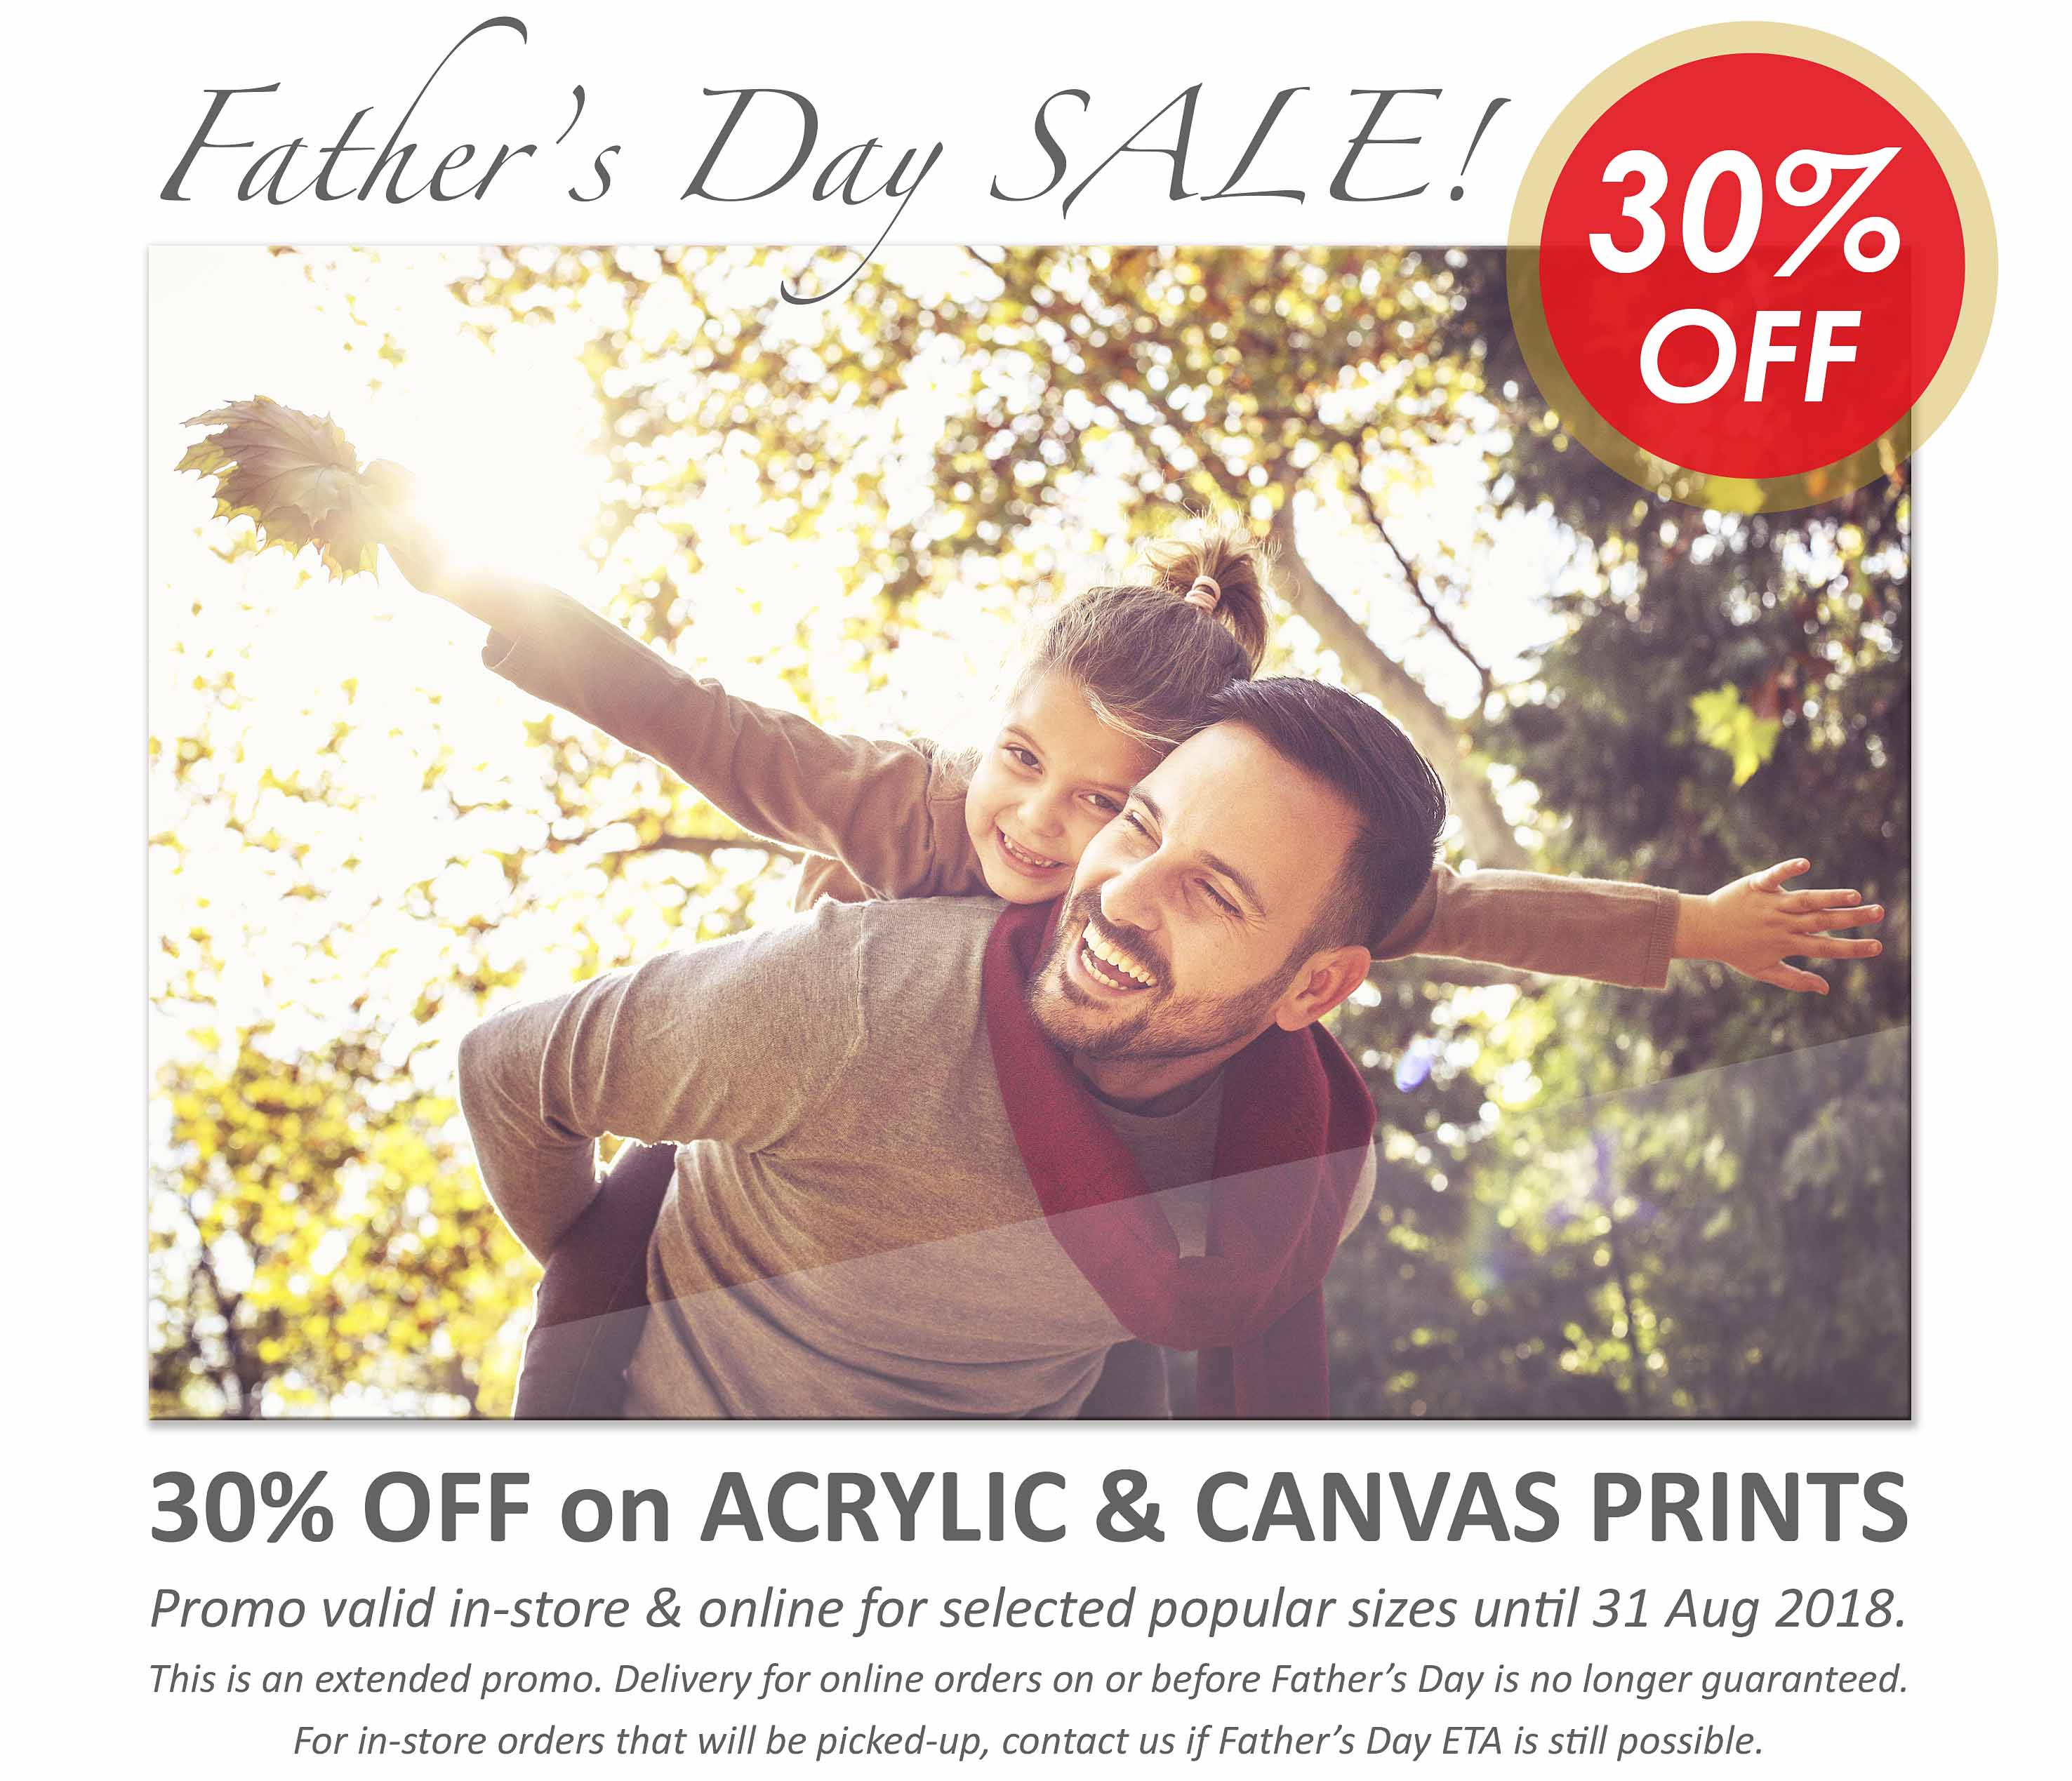 Deluxe Art Fathers Day Sale 30 OFF.v2